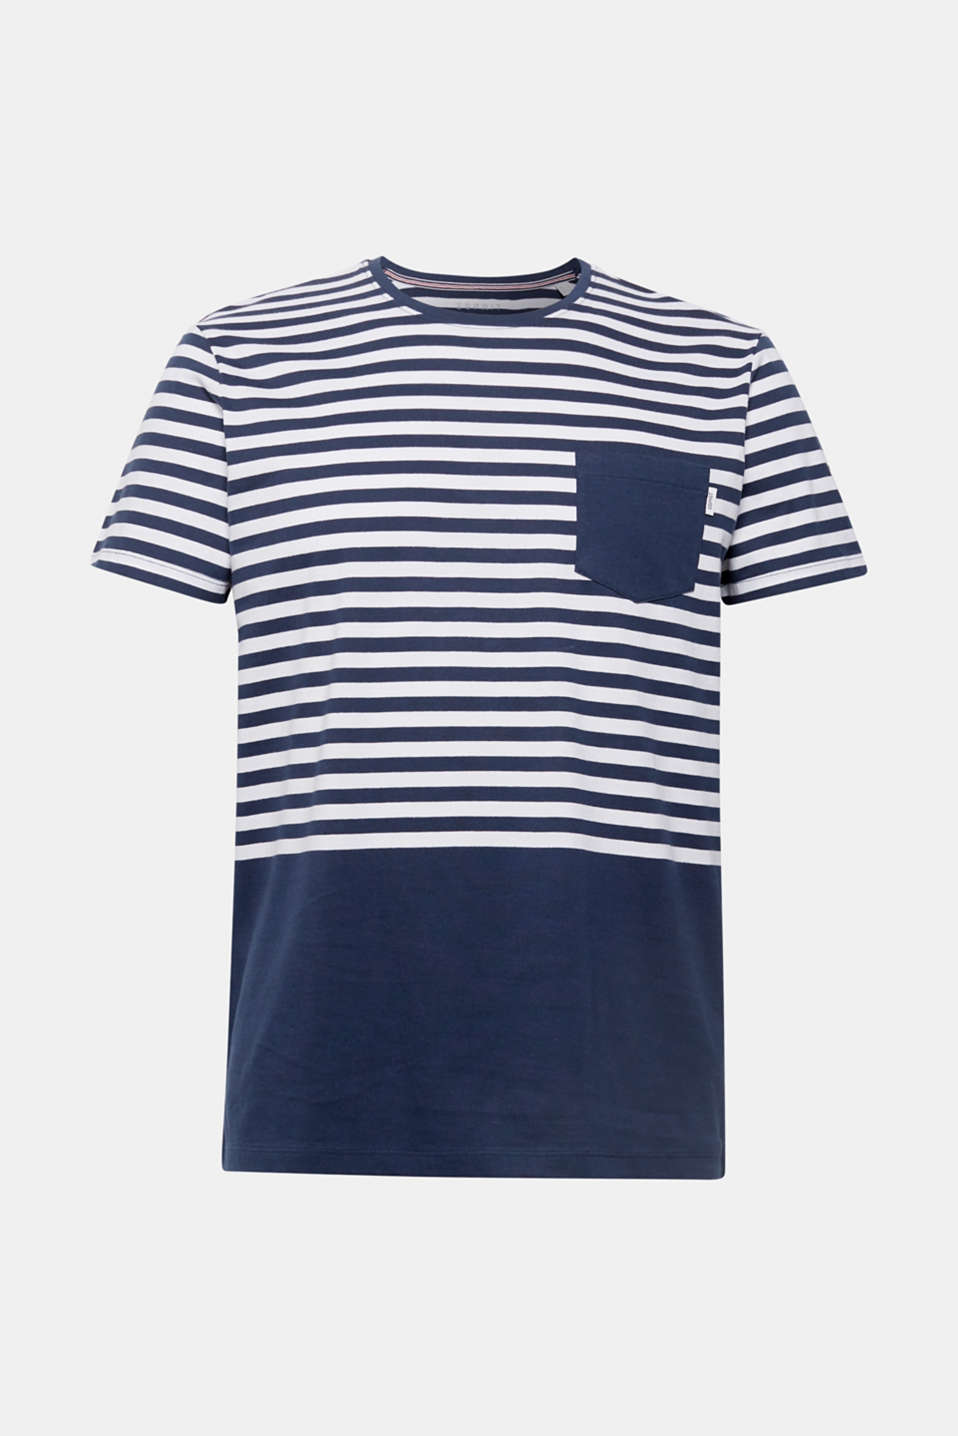 Jersey T-shirt with stripes, 100% cotton, NAVY, detail image number 5